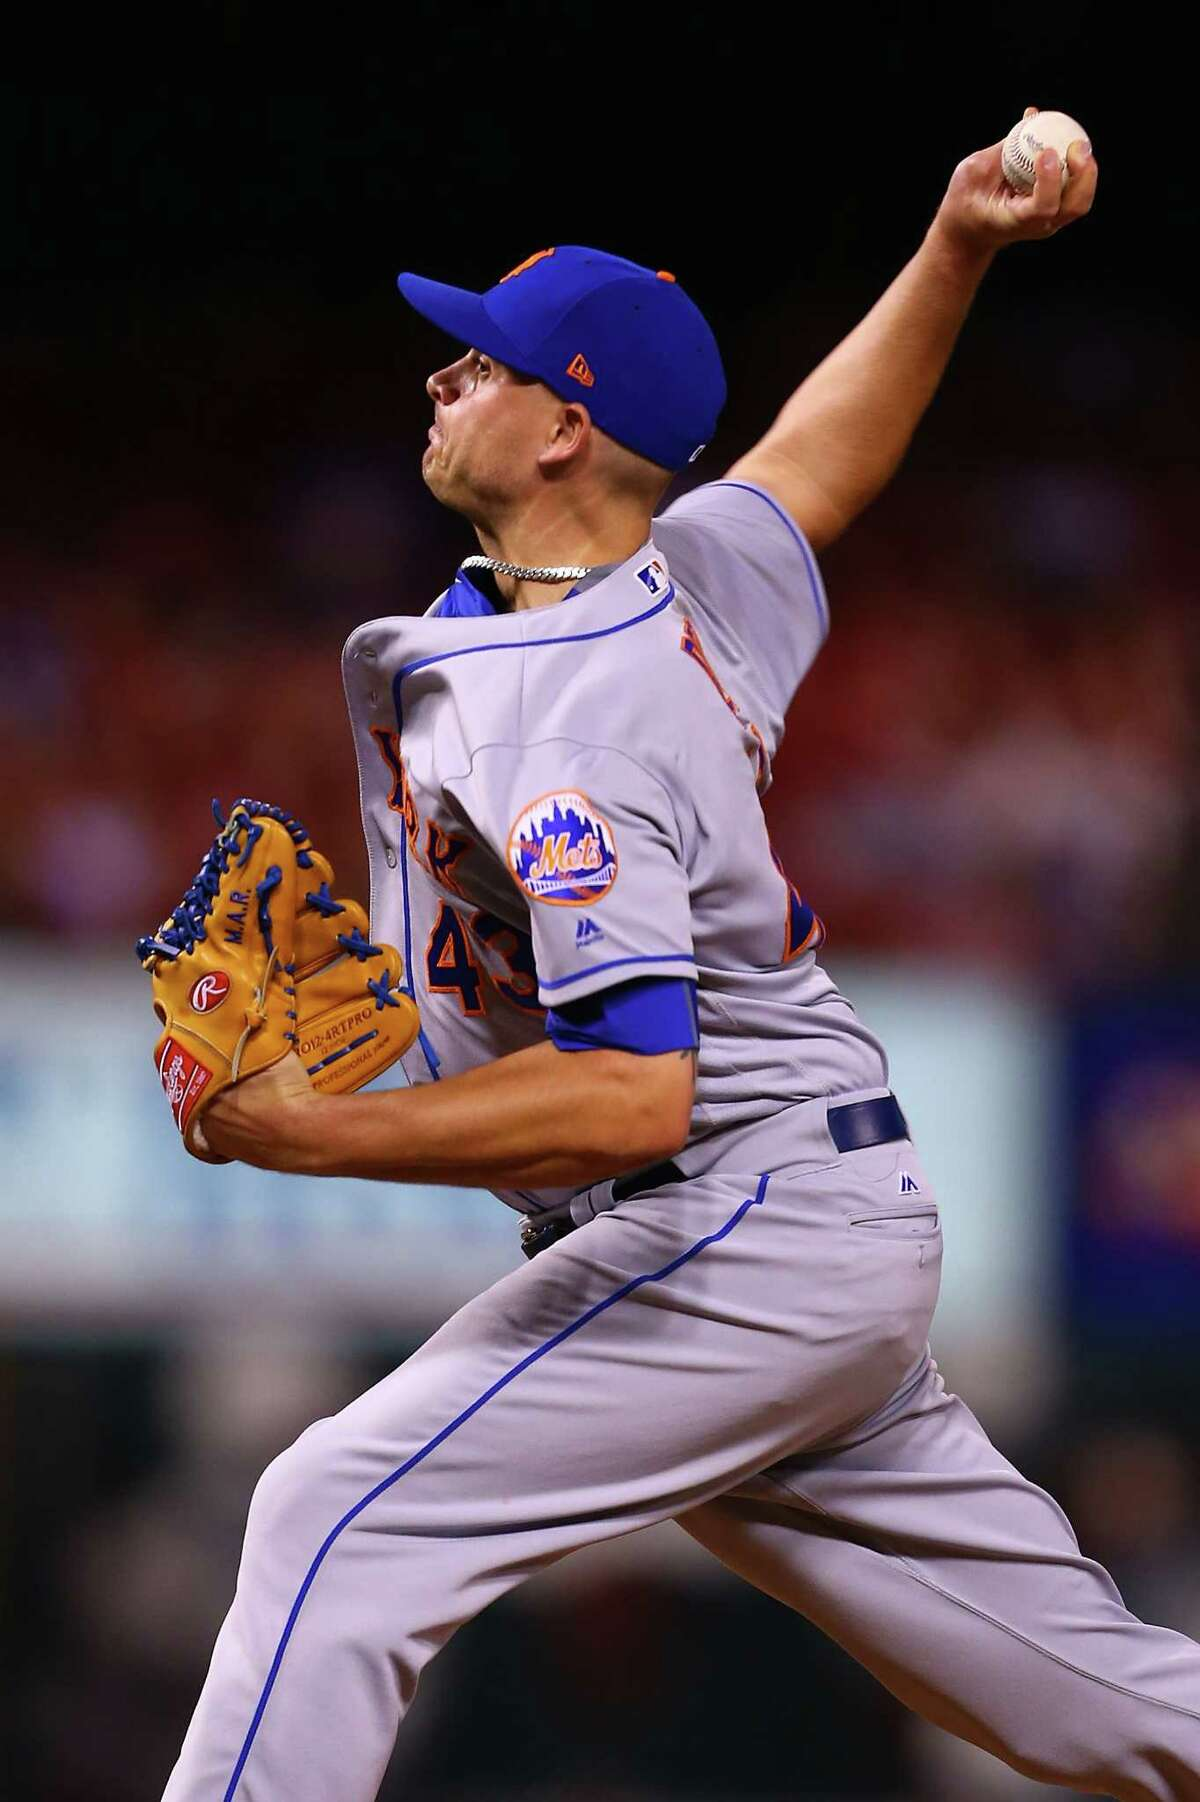 ST. LOUIS, MO - JULY 7: Addison Reed #43 of the New York Mets delivers a pitch against the St. Louis Cardinals in the ninth inning at Busch Stadium on July 7, 2017 in St. Louis, Missouri. (Photo by Dilip Vishwanat/Getty Images) ORG XMIT: 700011552